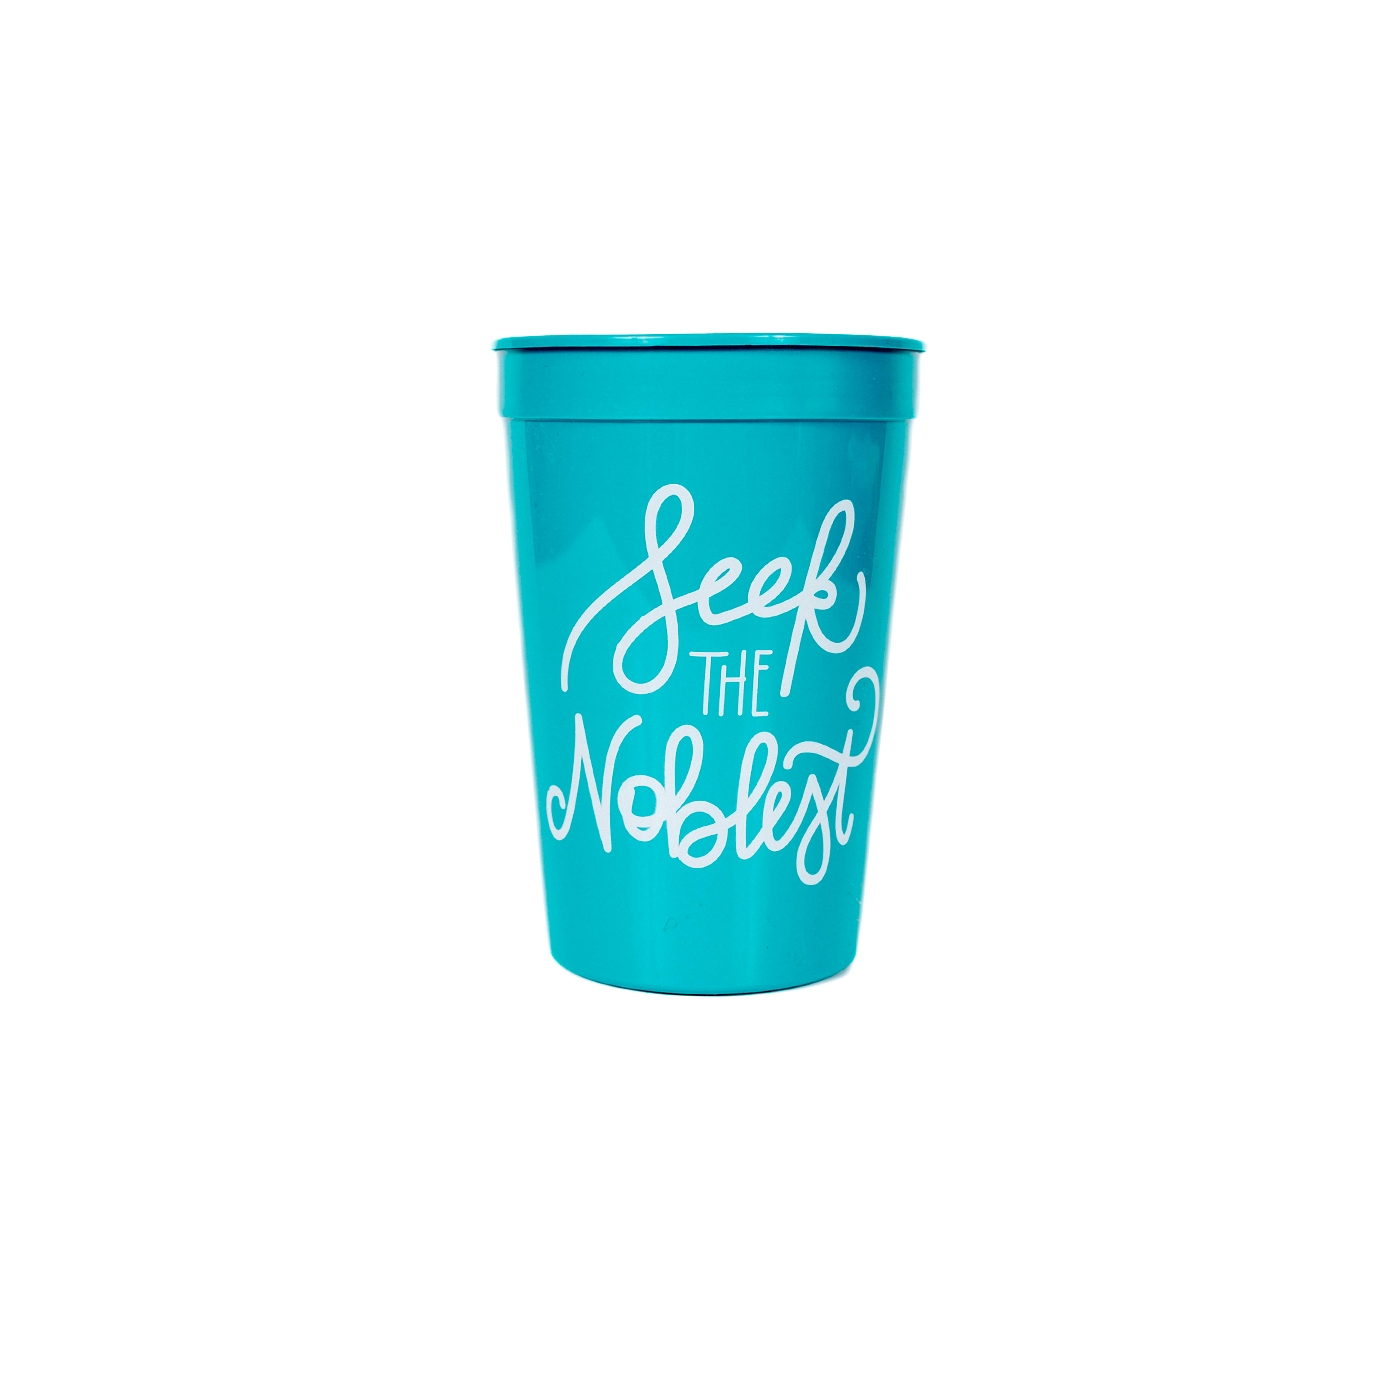 """Seek the Noblest"" Cup"